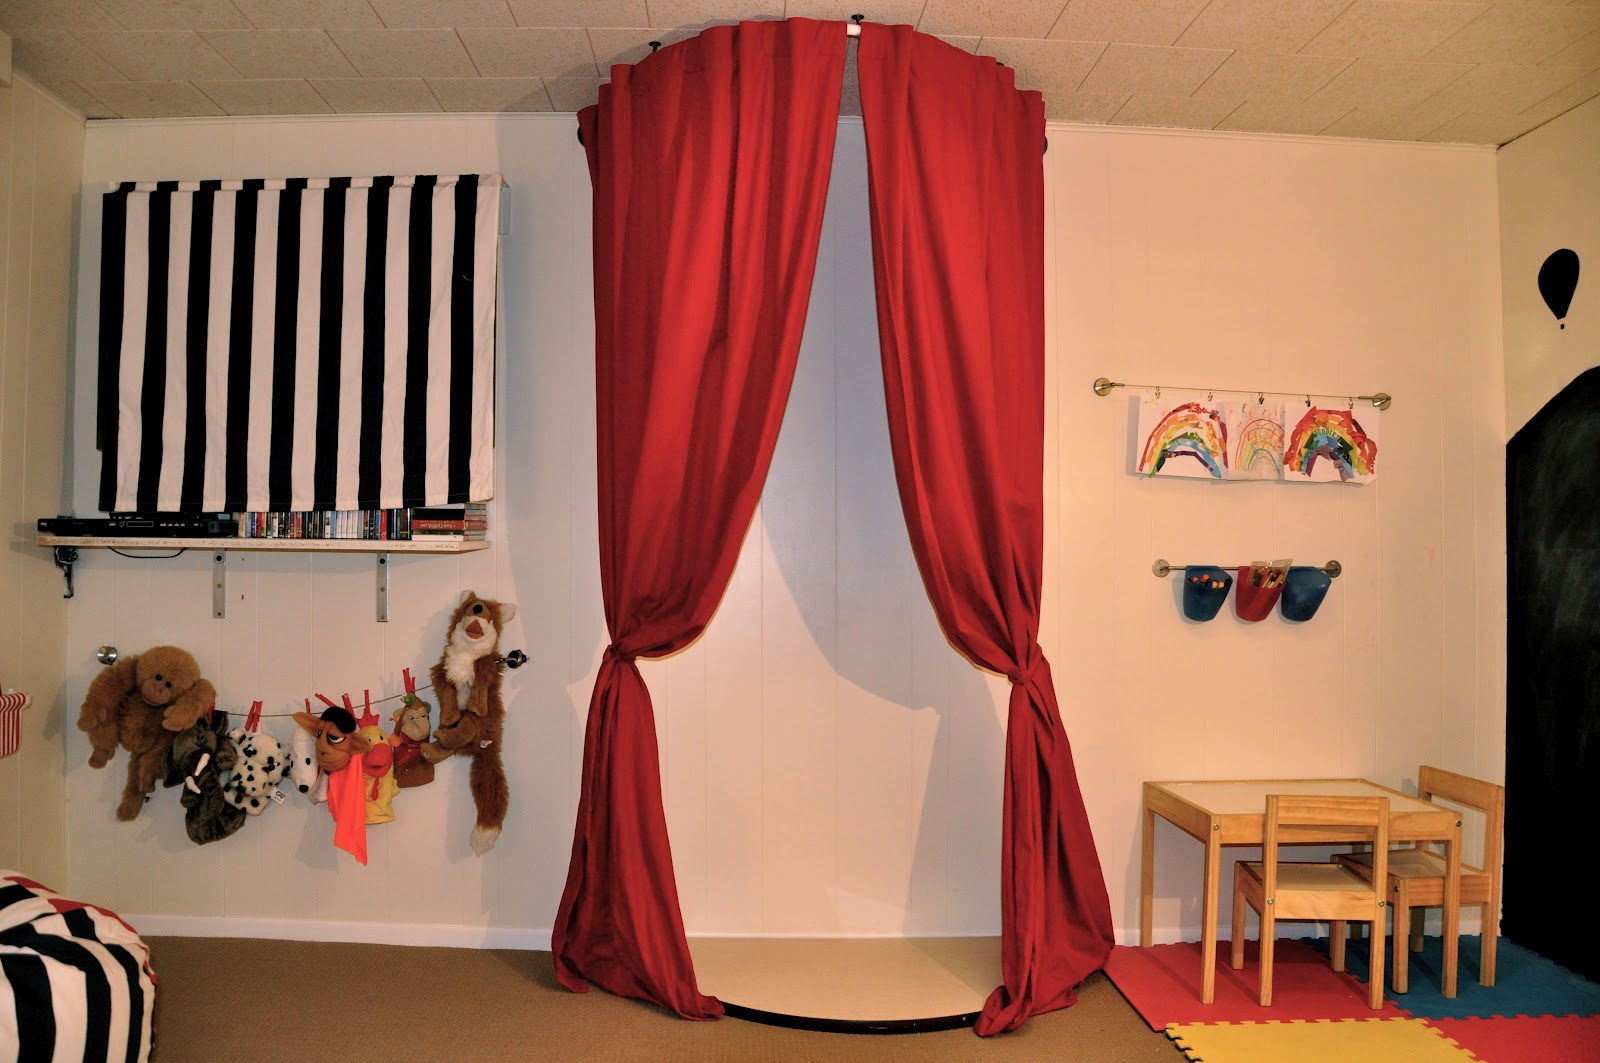 Playroom stage curtains detail kids traditional with curtain.